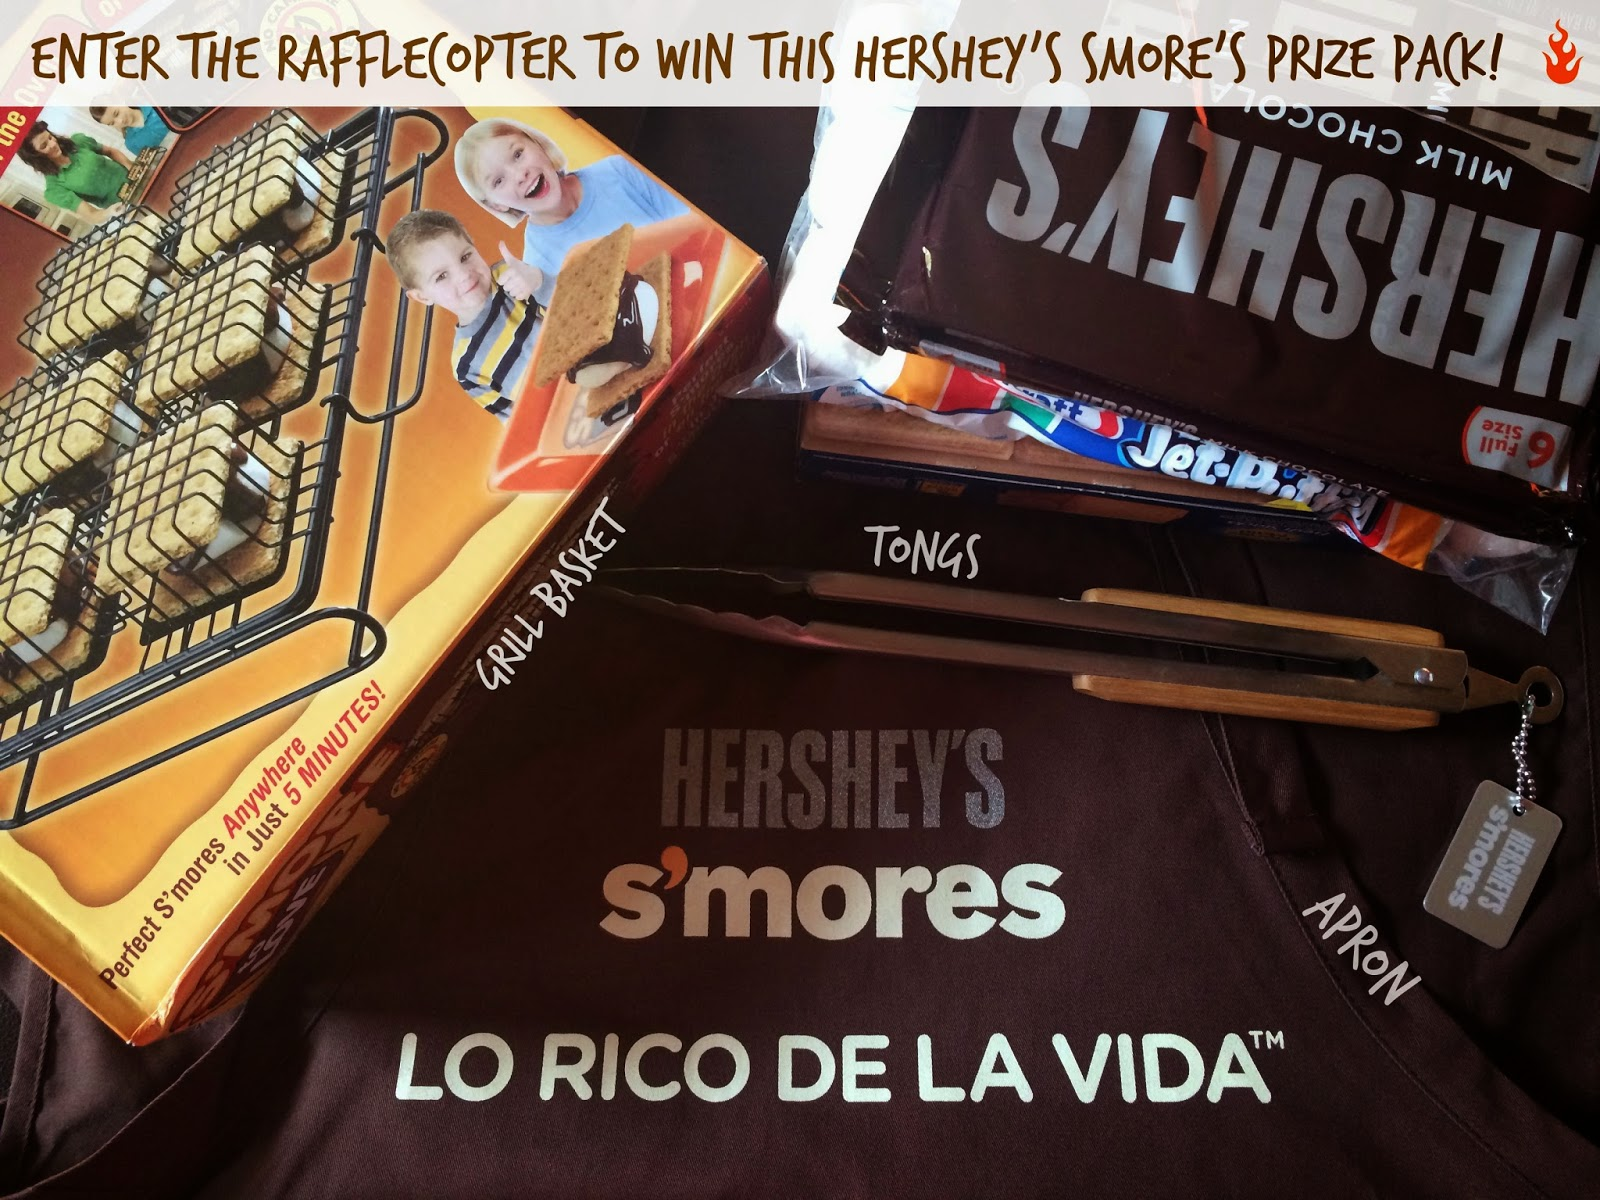 #VeranoHersheys S'more Prize Pack Giveaway